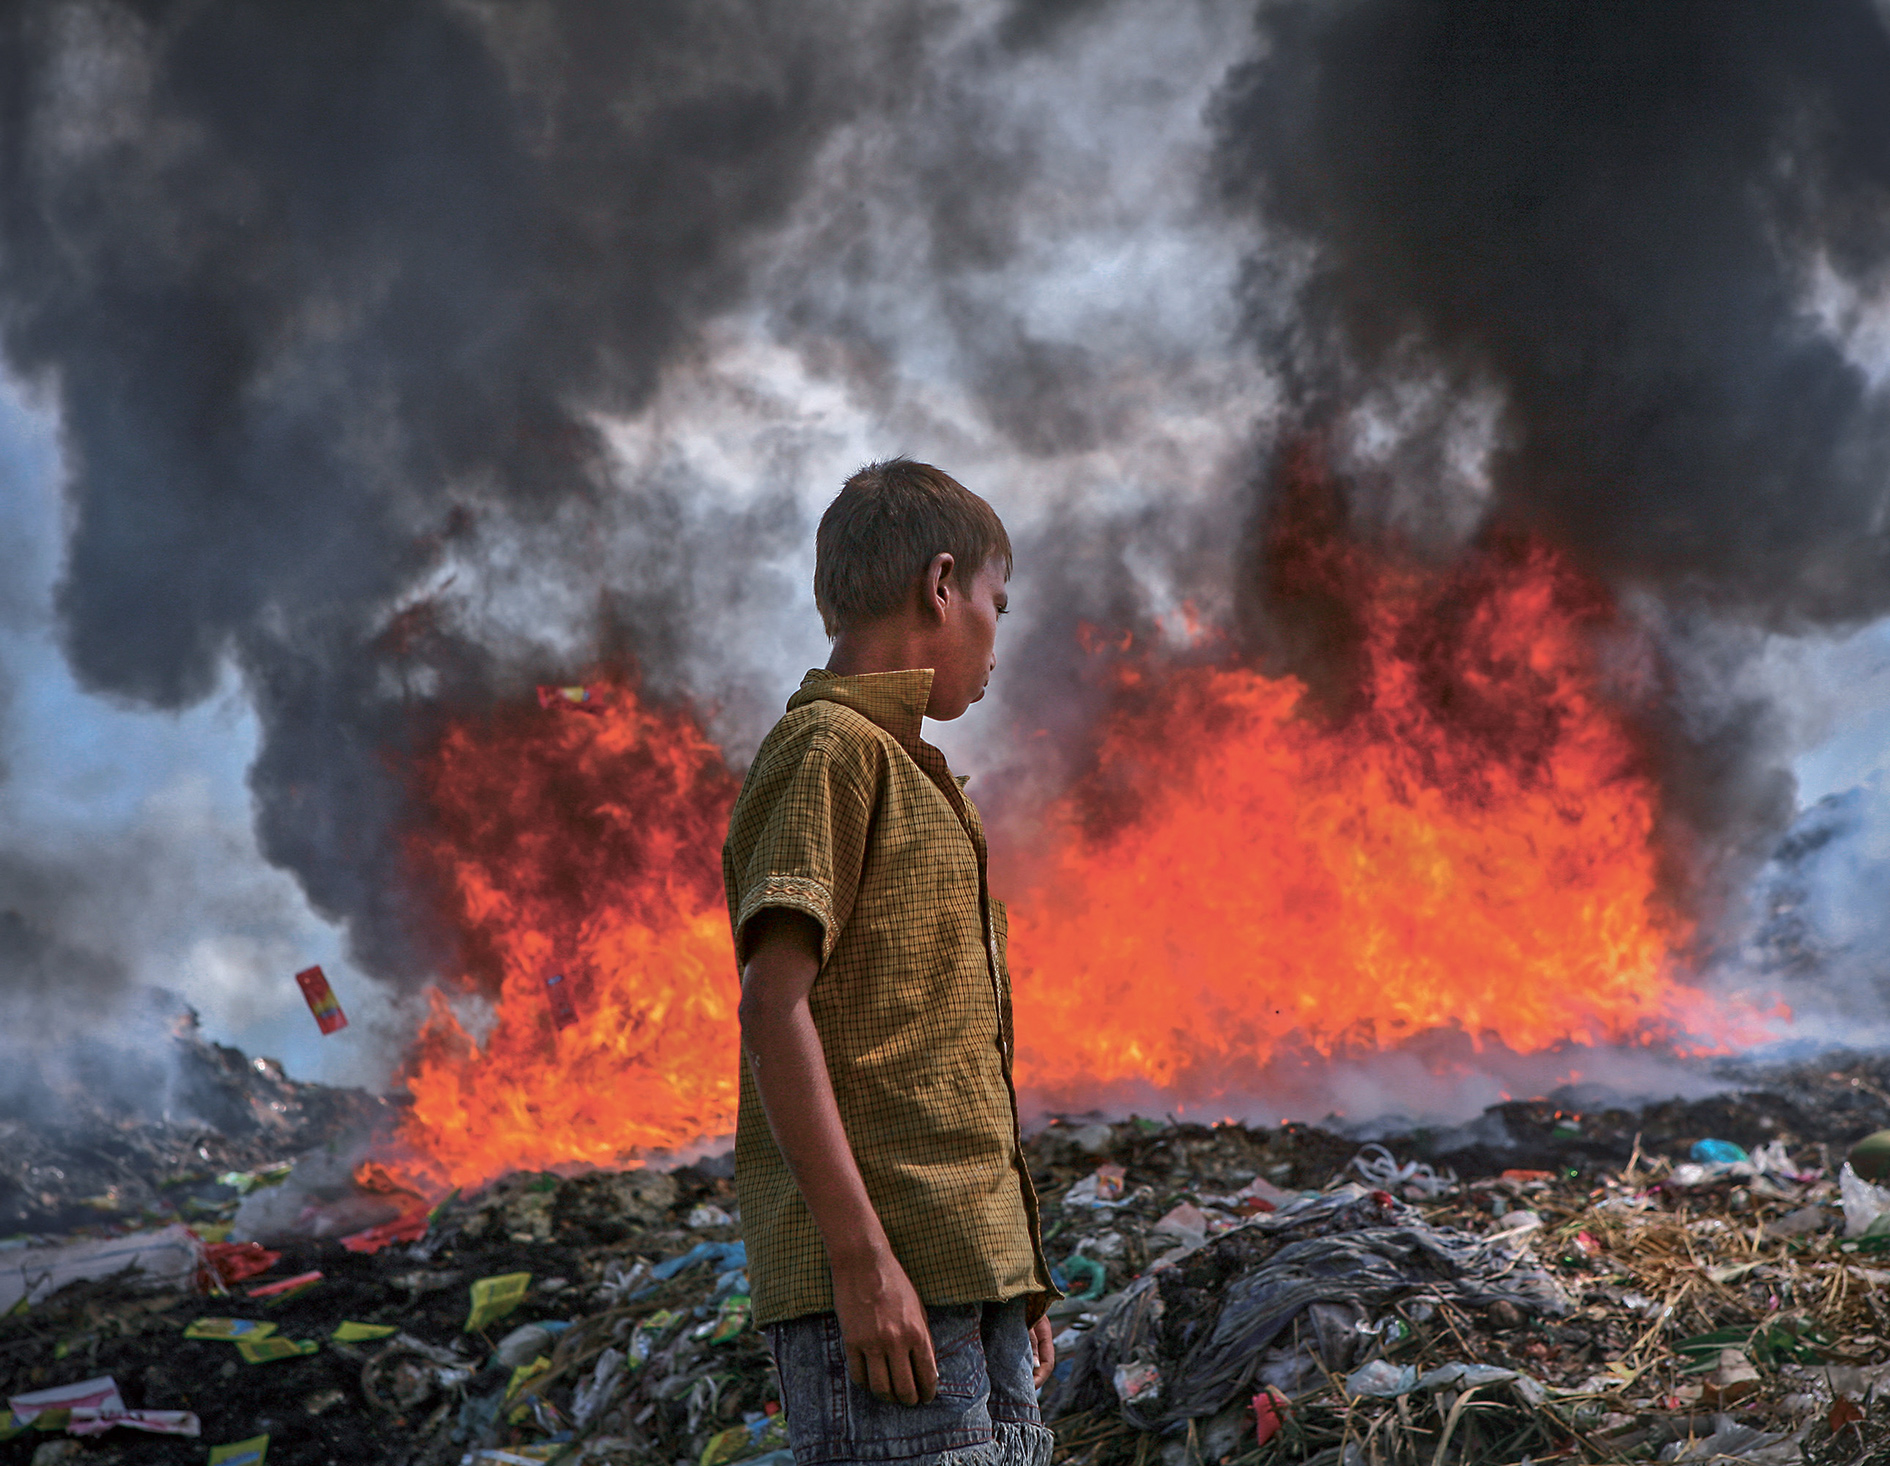 This young garbage picker continues his search for saleable items, as part of the permanent dump in Sylhet, east Bangladesh, goes up in flames.  Spontaneous fires in open dumps are a common problem.